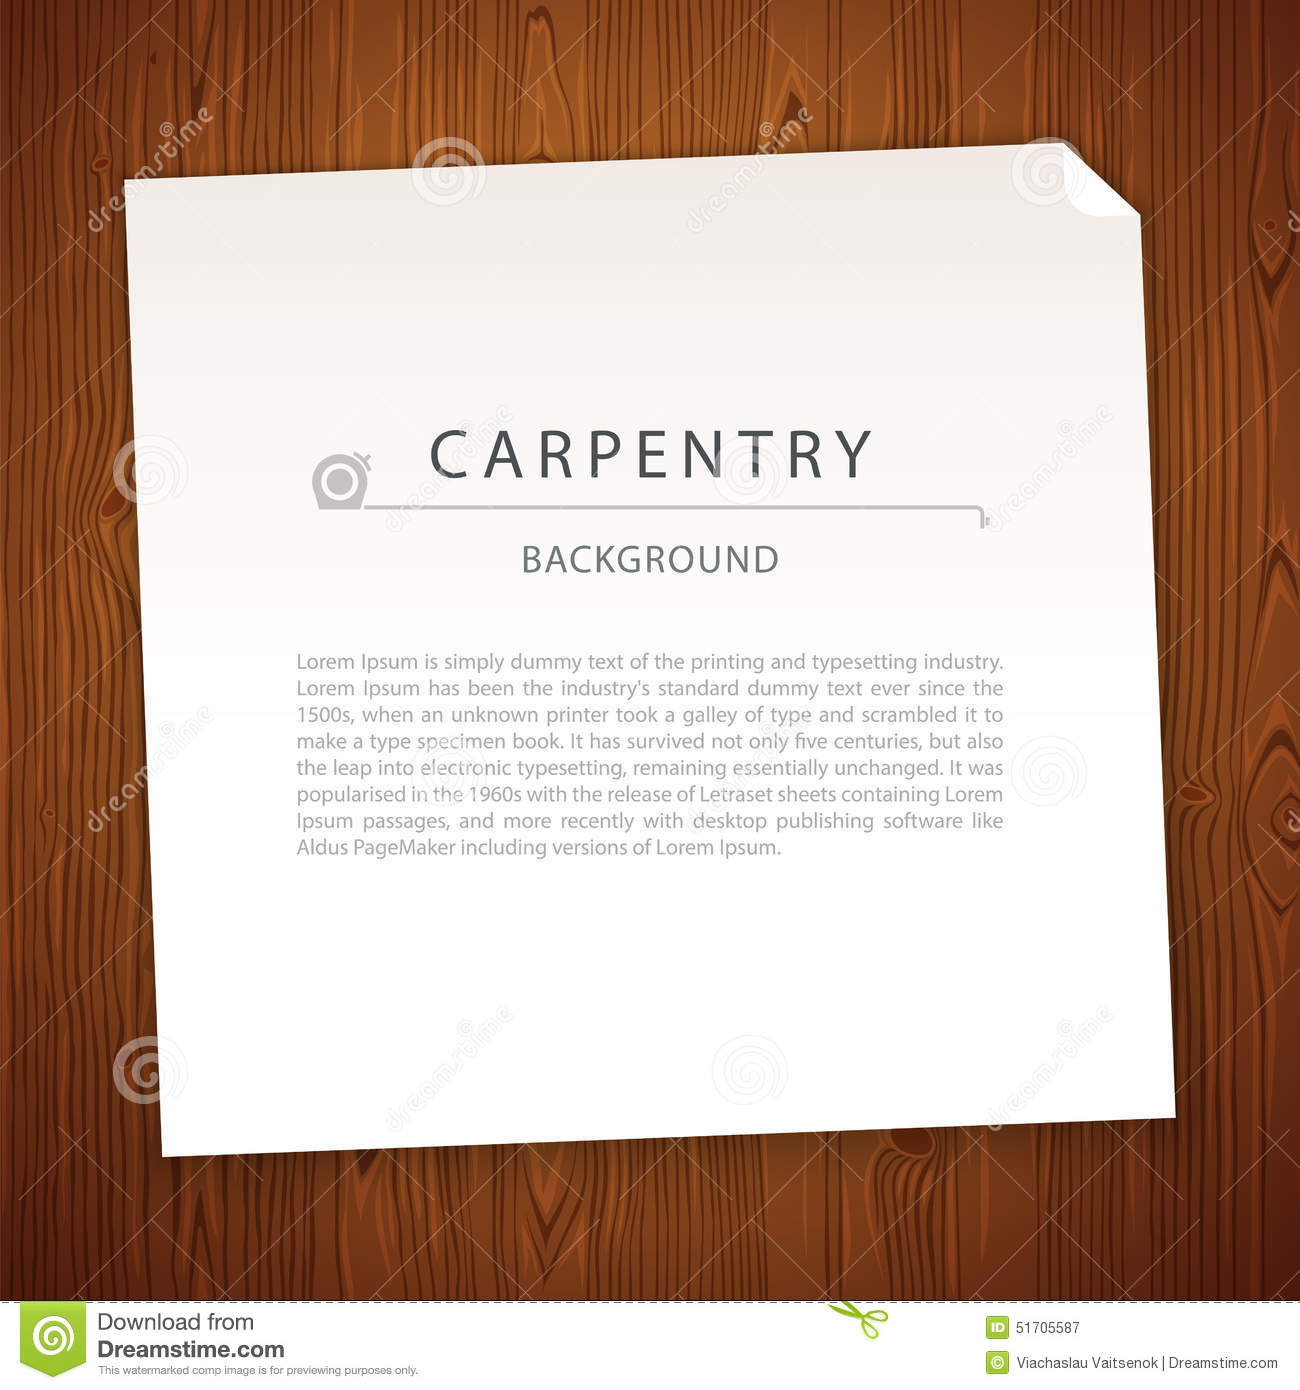 Carpentry background - photo#20